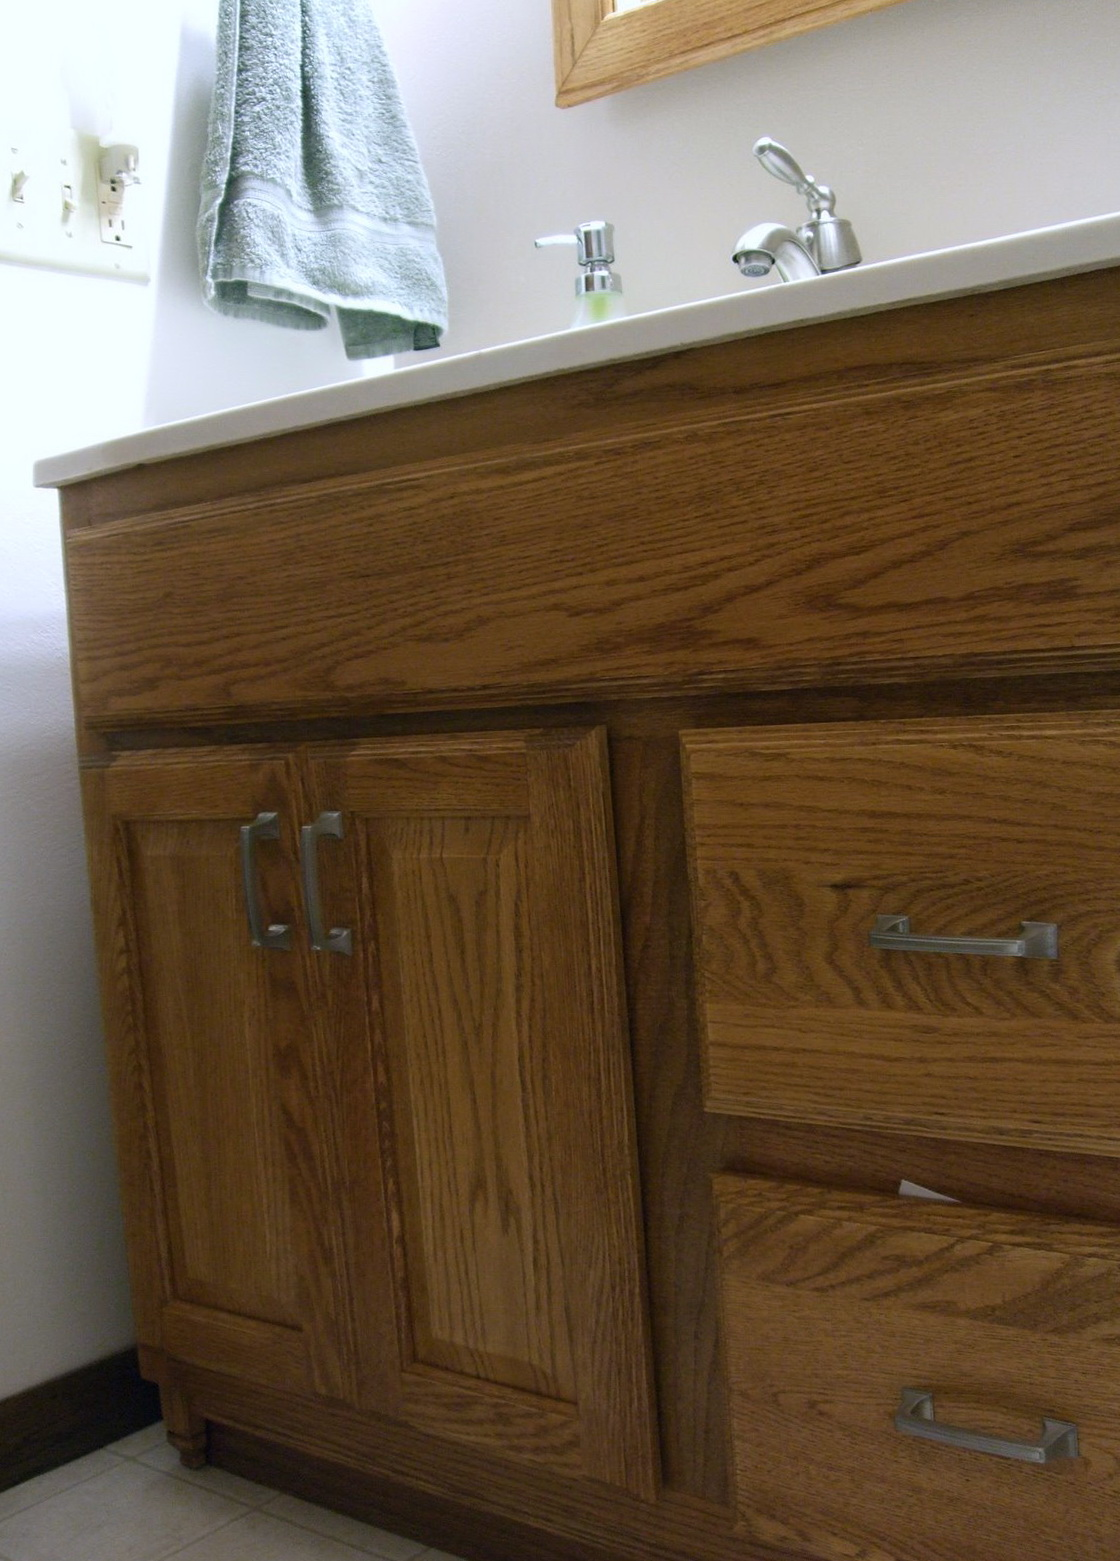 Unfinished Bathroom Vanities Menards Home Design Ideas